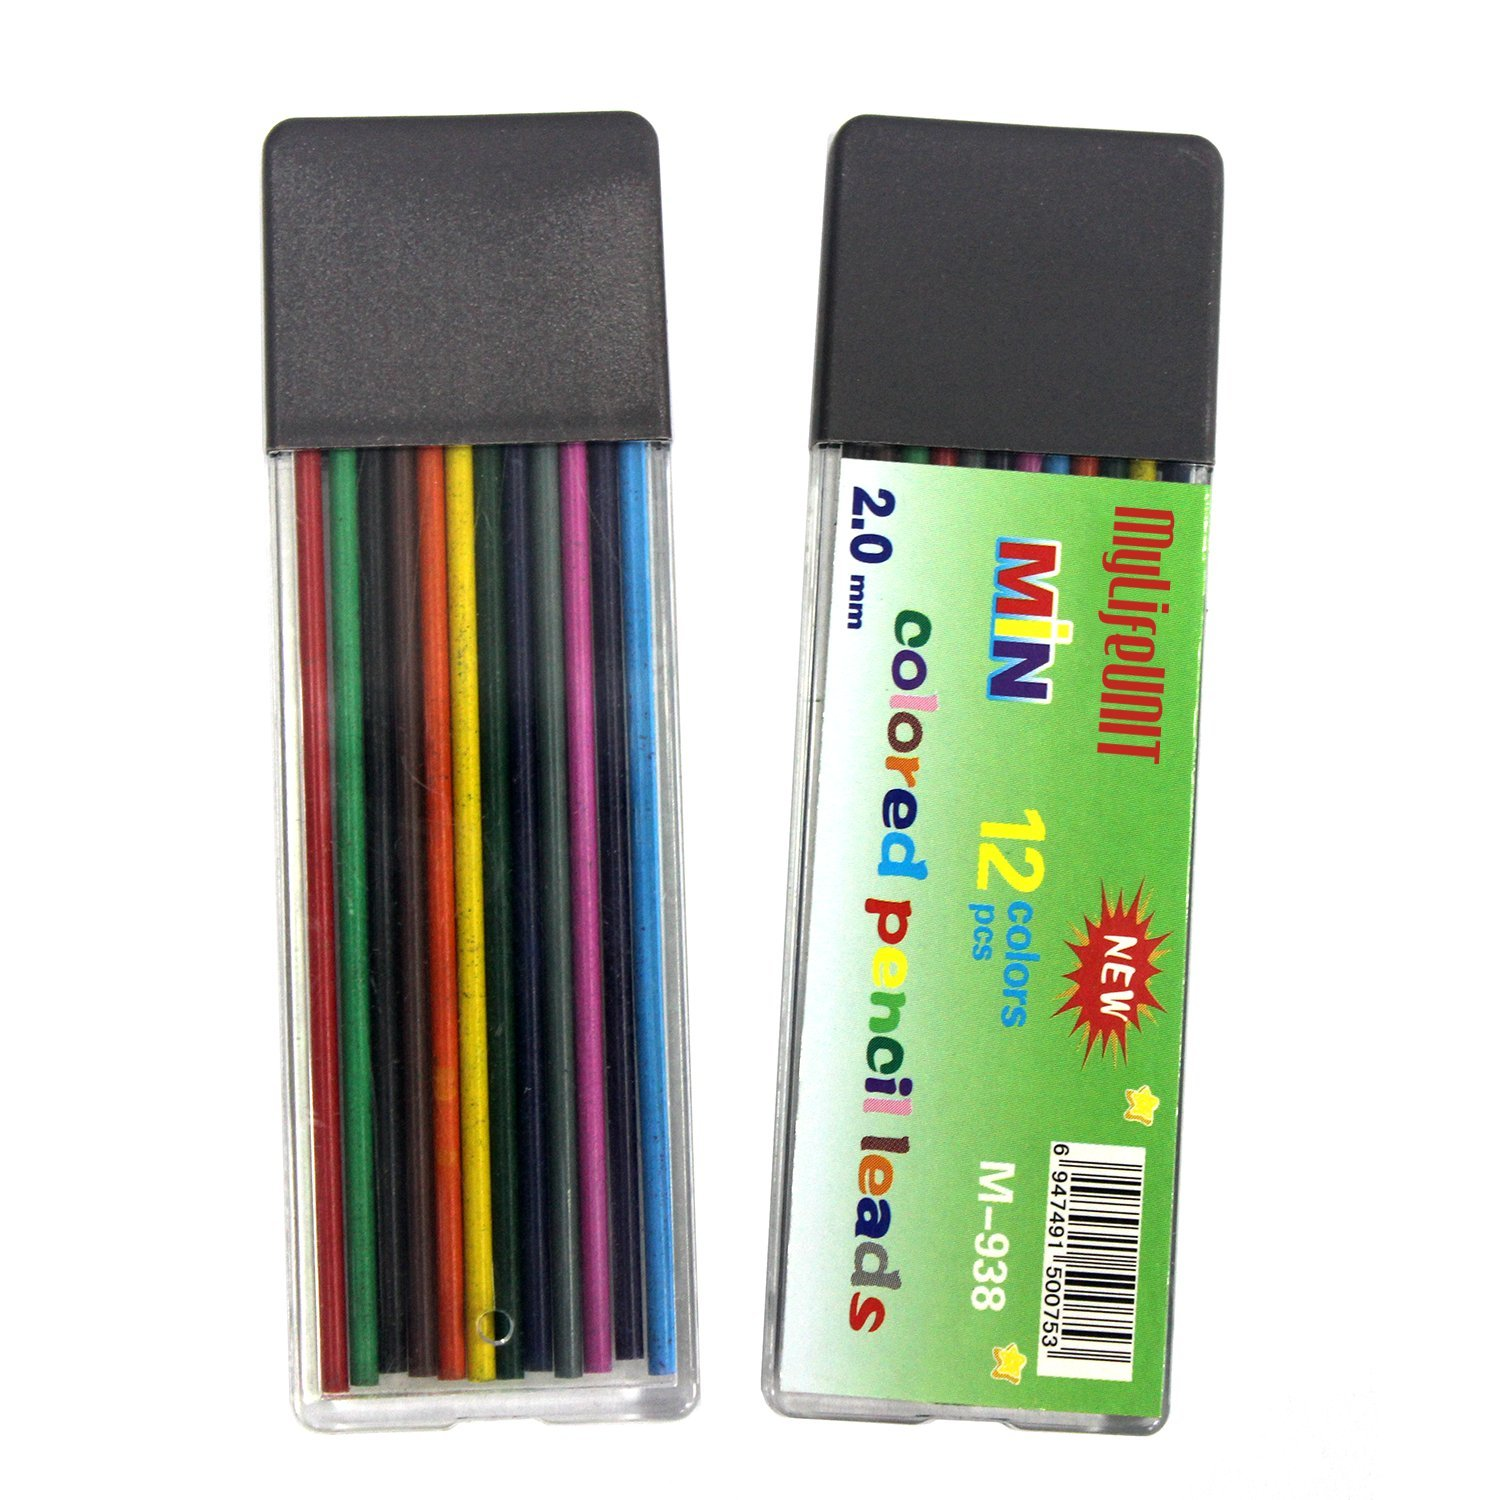 Amazon.com : MyLifeUNIT 2mm Color Pencil Lead, 2.0mm 12 Colors Lead ...